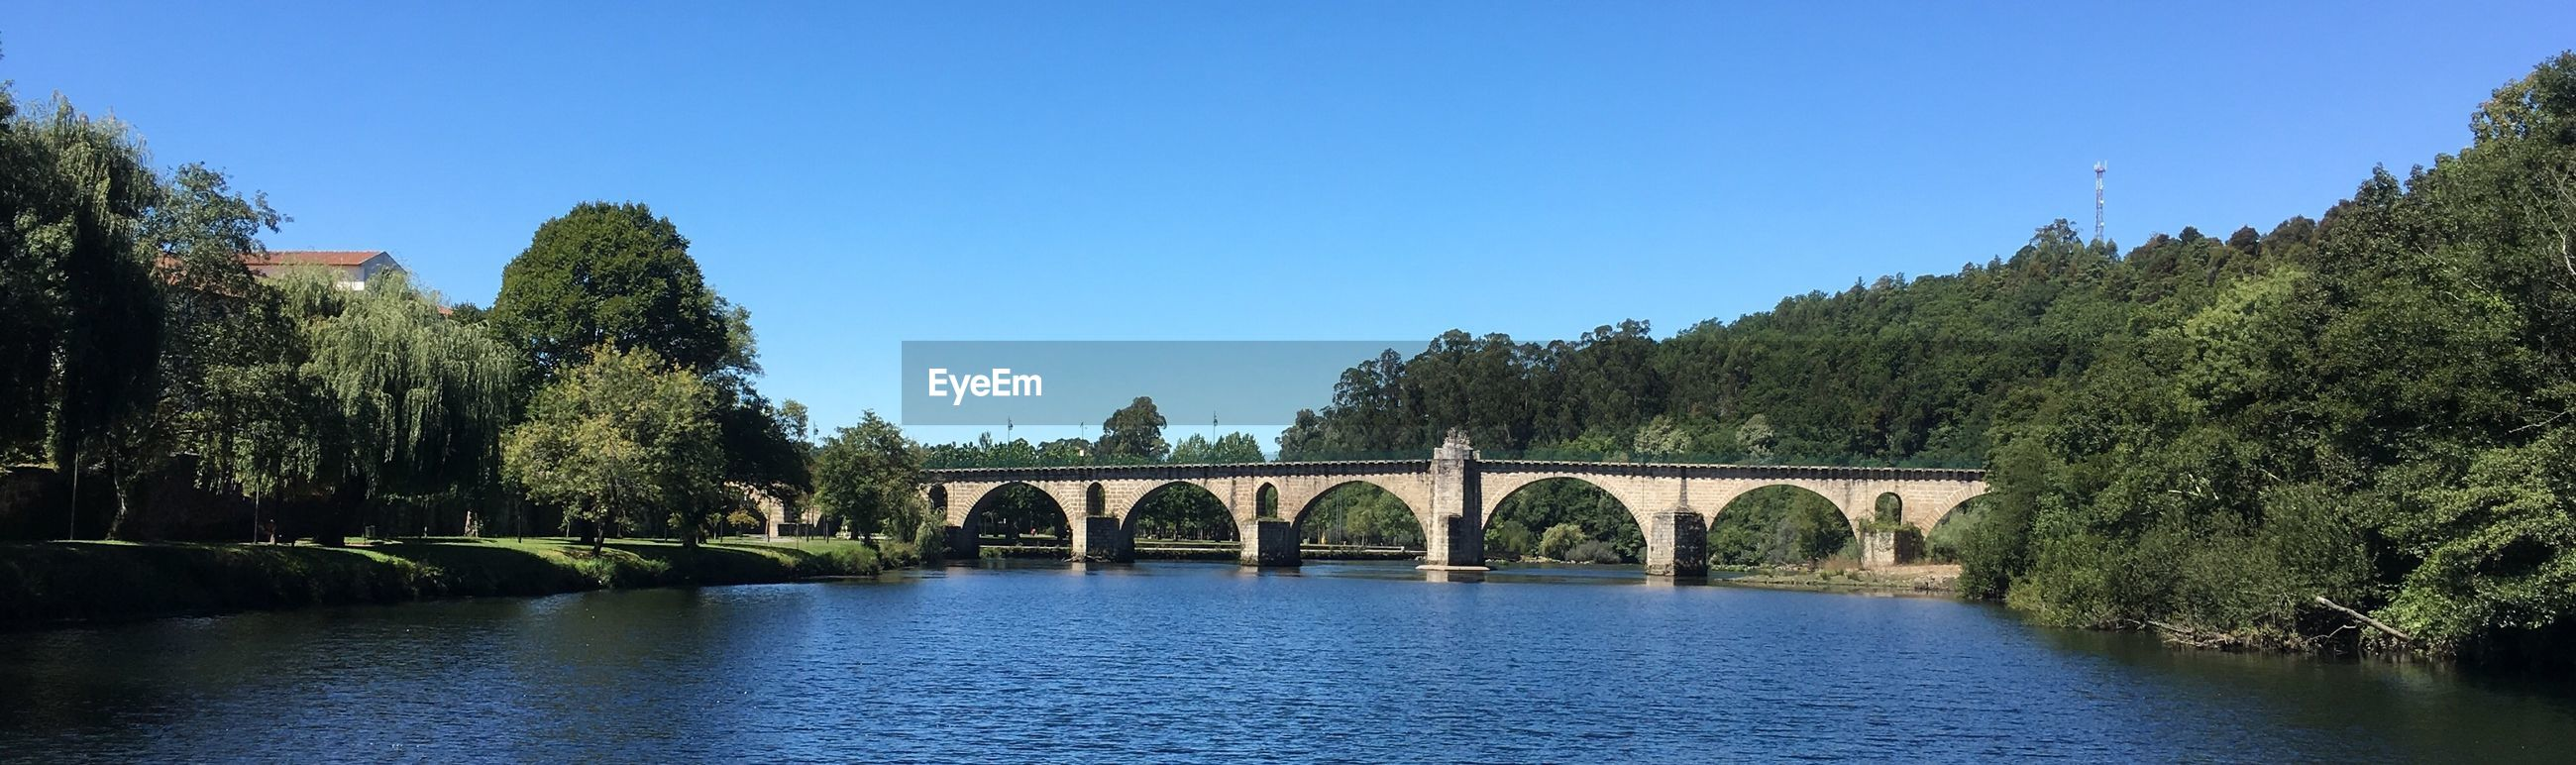 tree, clear sky, bridge - man made structure, arch, built structure, river, architecture, day, tranquil scene, blue, water, nature, no people, outdoors, tranquility, beauty in nature, waterfront, scenics, growth, sky, forest, mountain